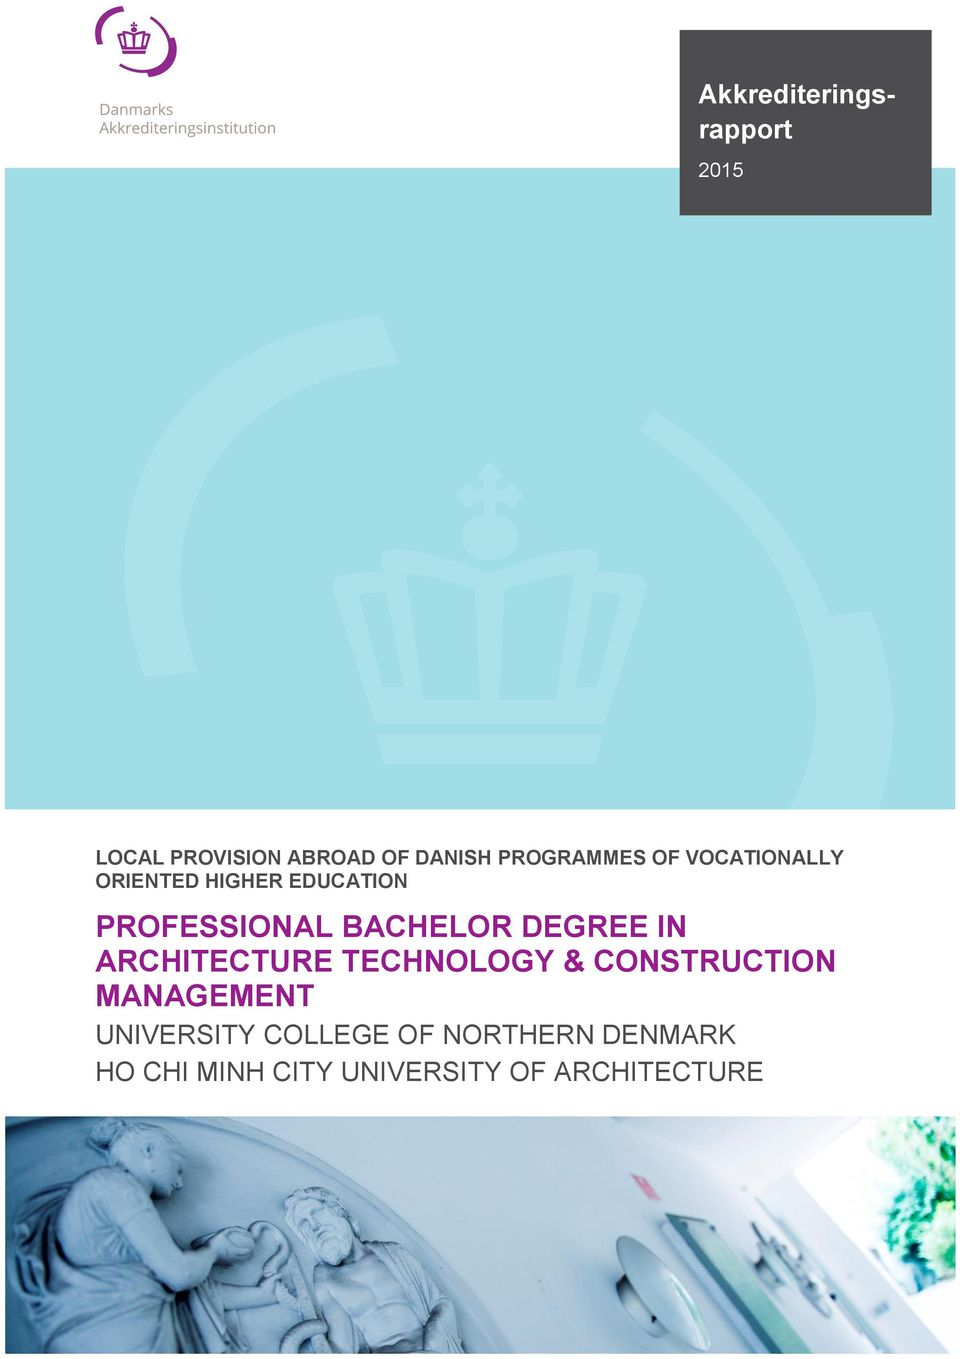 BACHELOR DEGREE IN ARCHITECTURE TECHNOLOGY & CONSTRUCTION MANAGEMENT